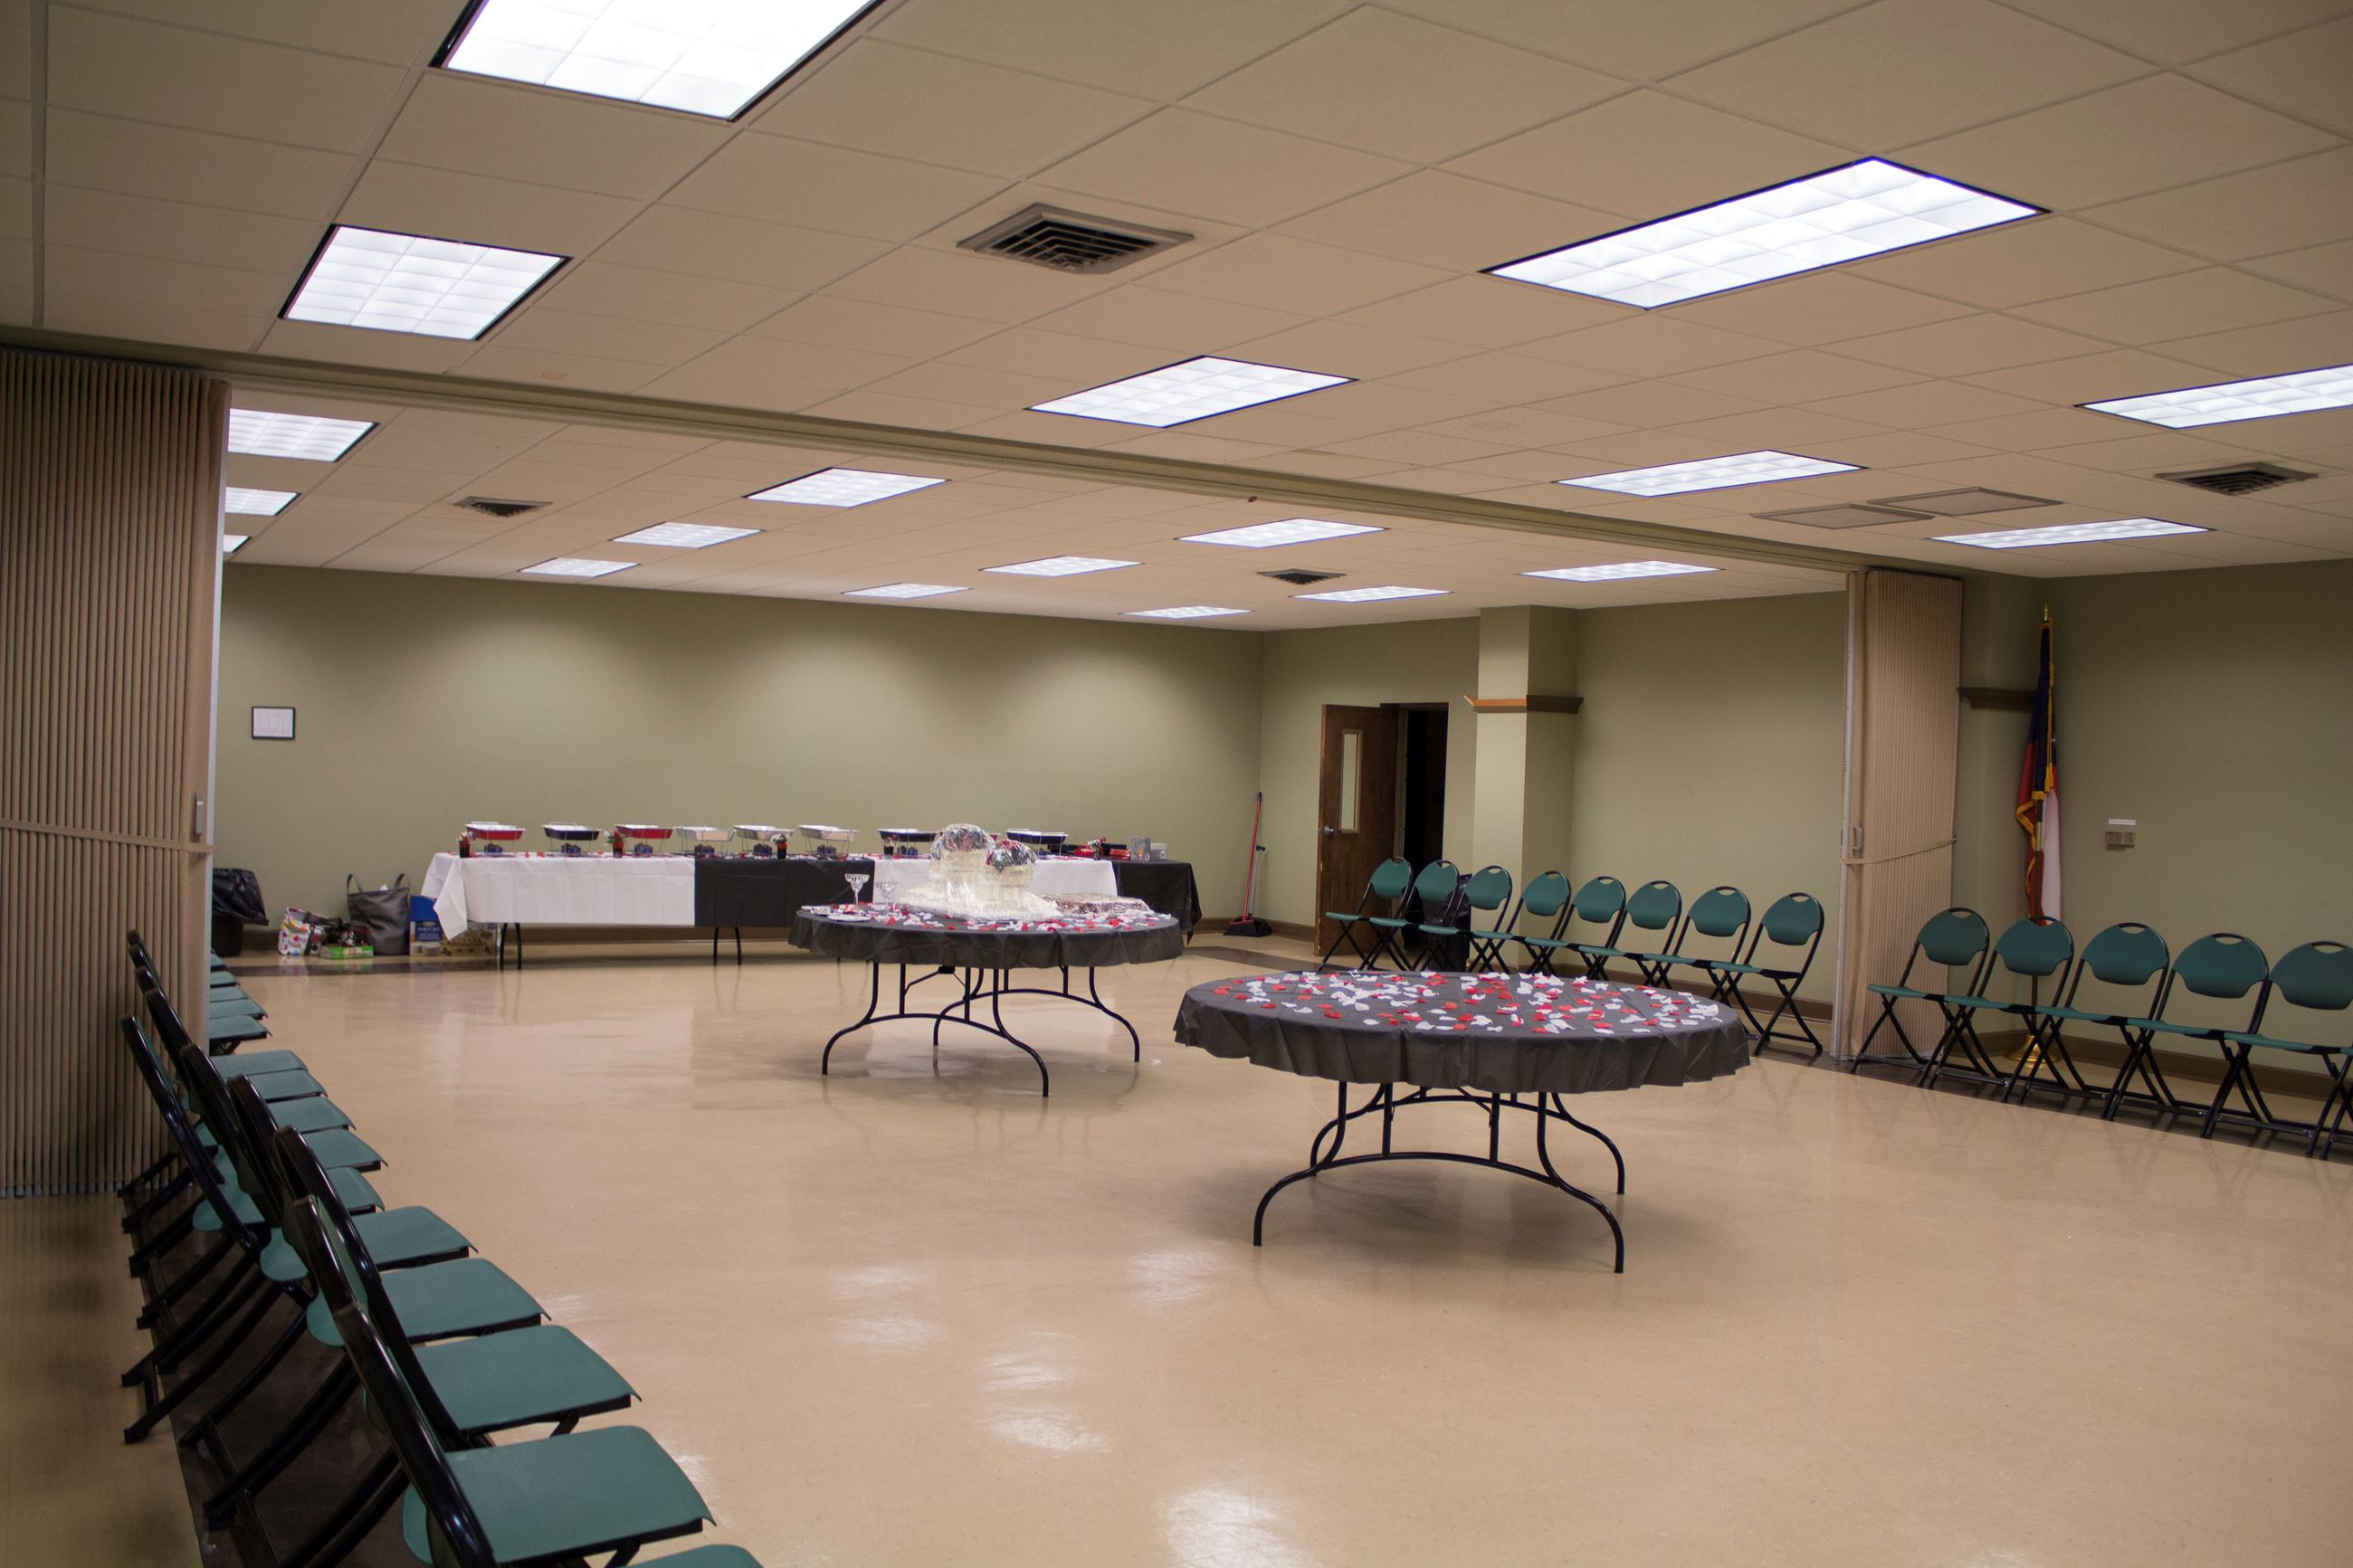 An image of a multipurpose room with tables and chairs set up for a community event.